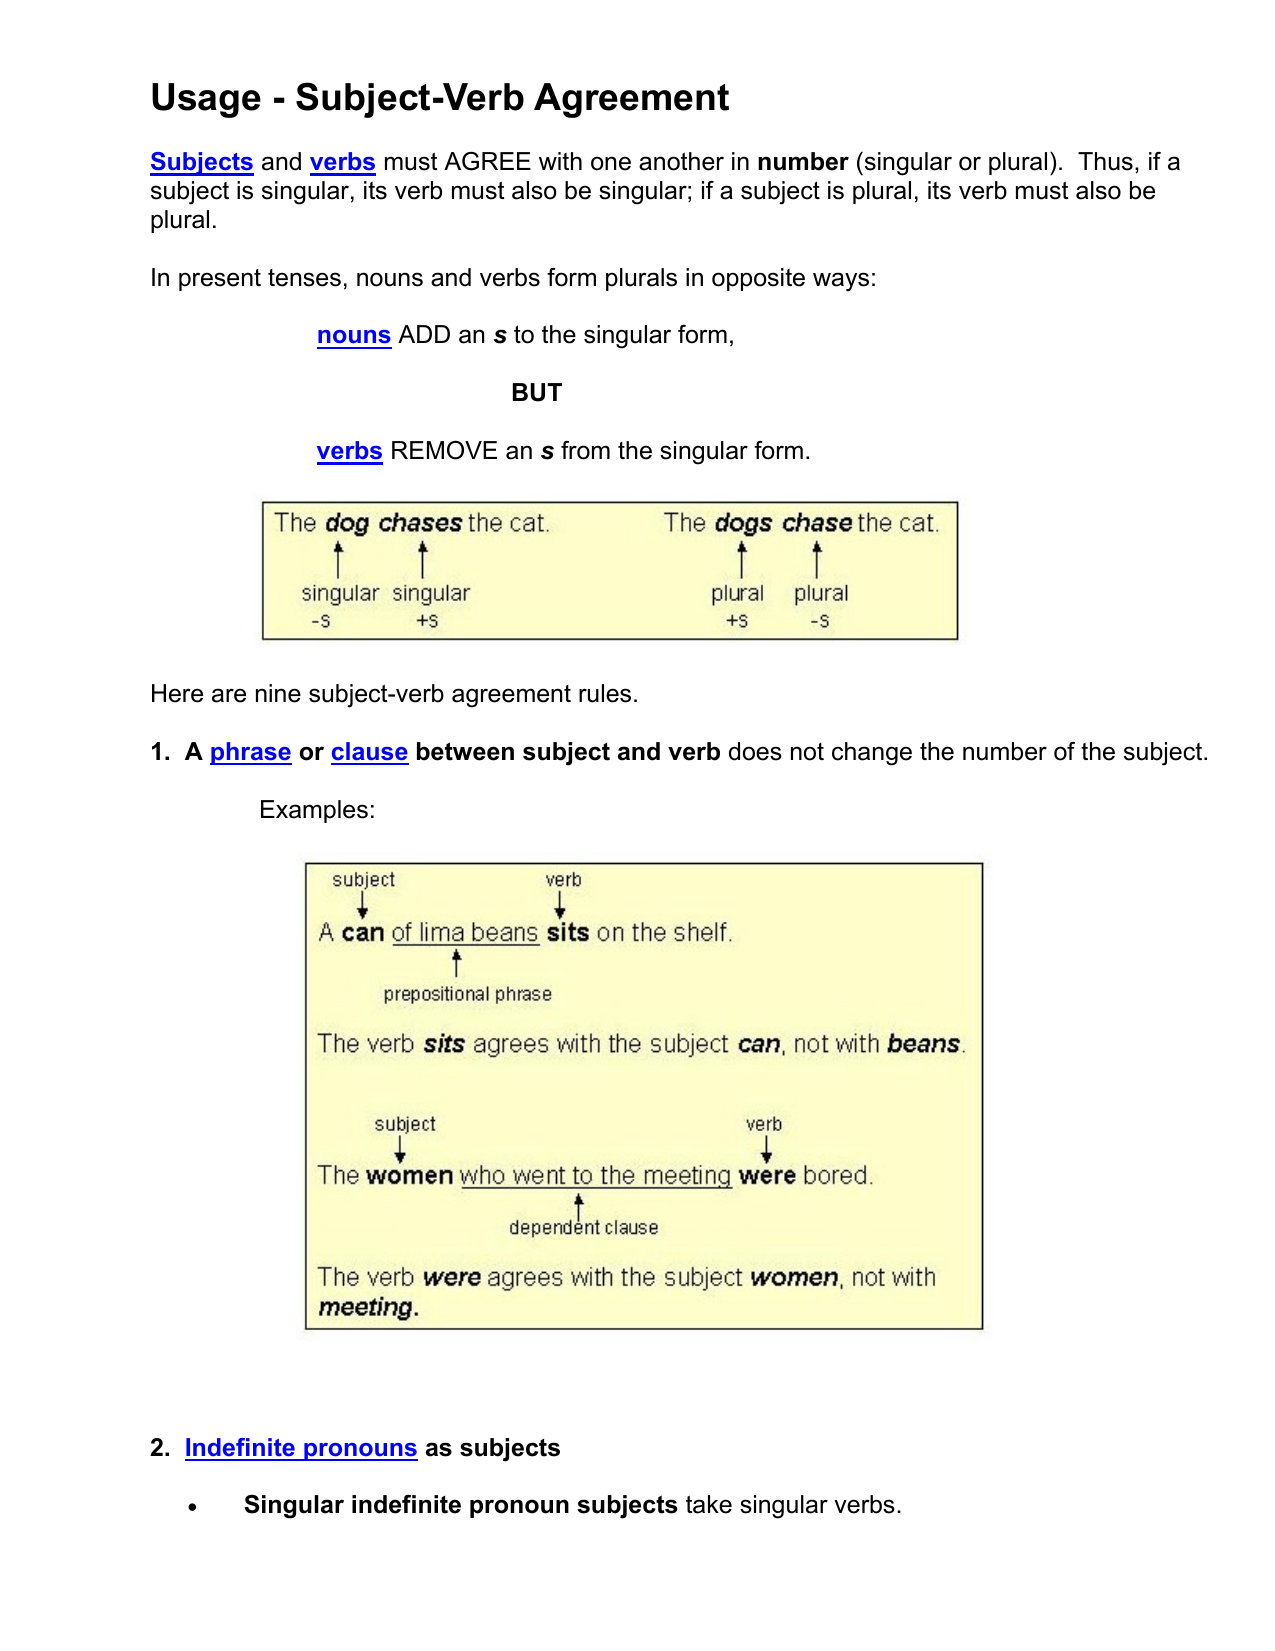 Subject Verb Agreement For Indefinite Pronouns Usage Subject Verb Agreement